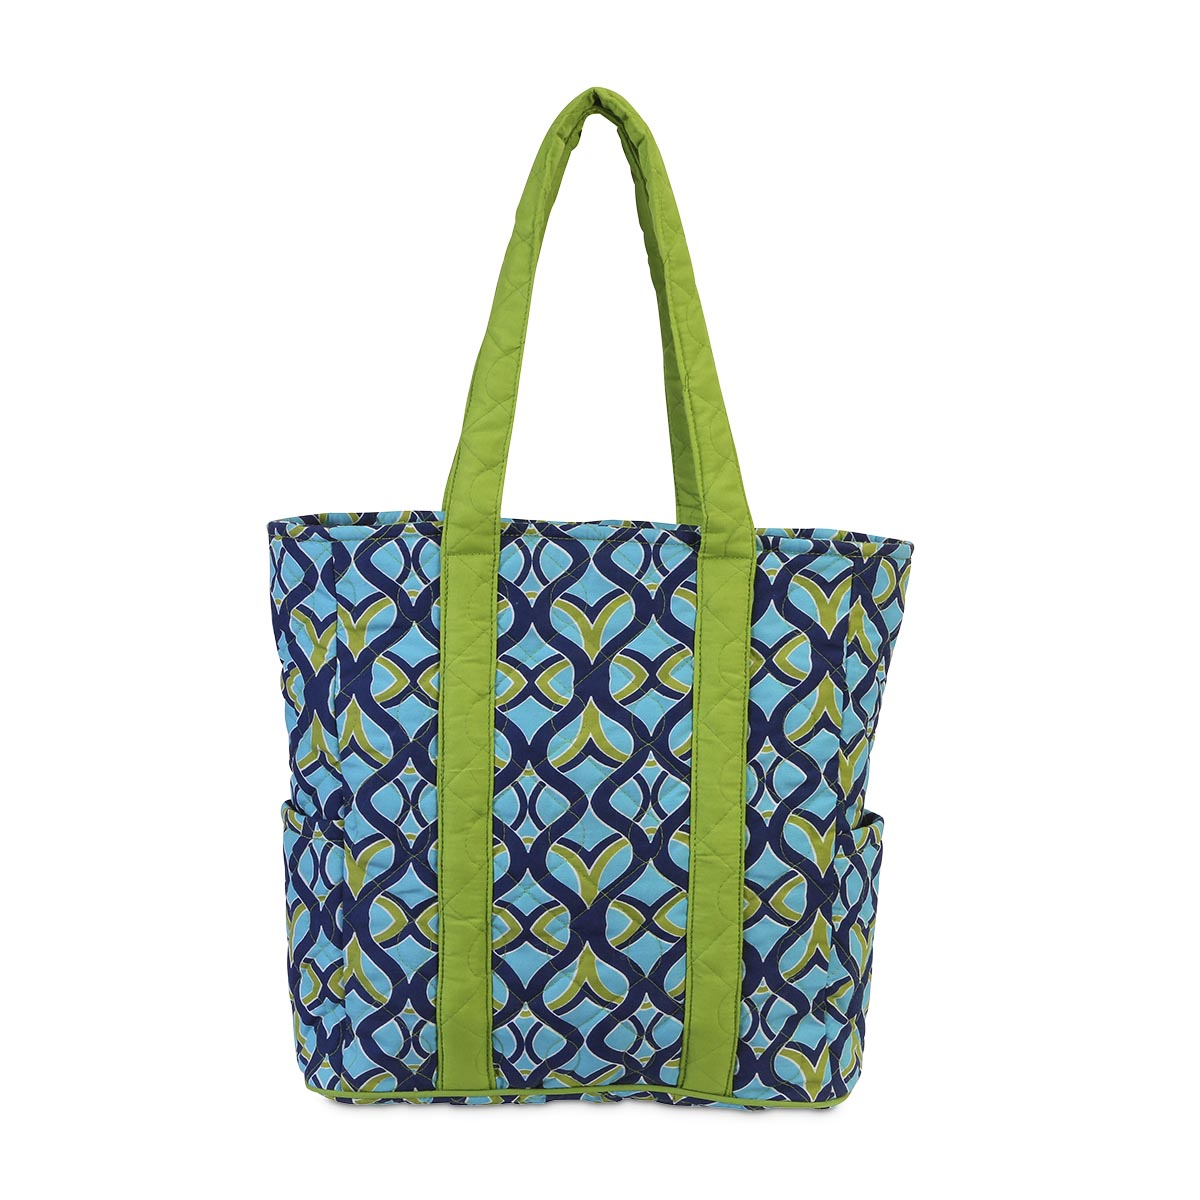 tango twist navy quilted harper tote